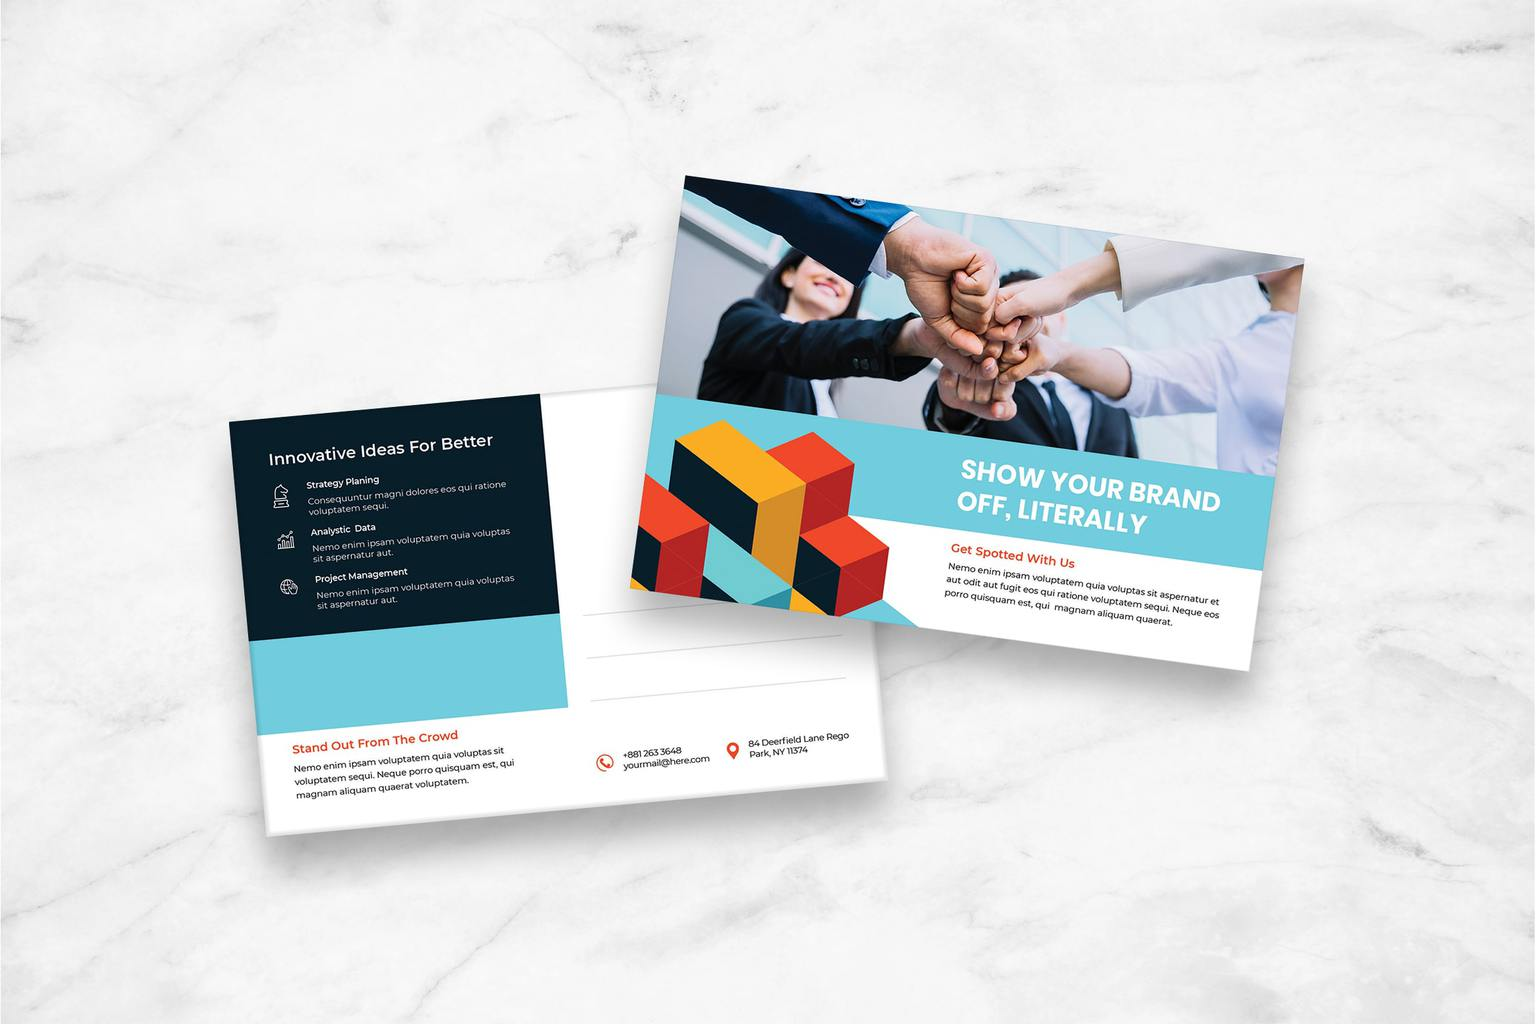 postcard brand project management